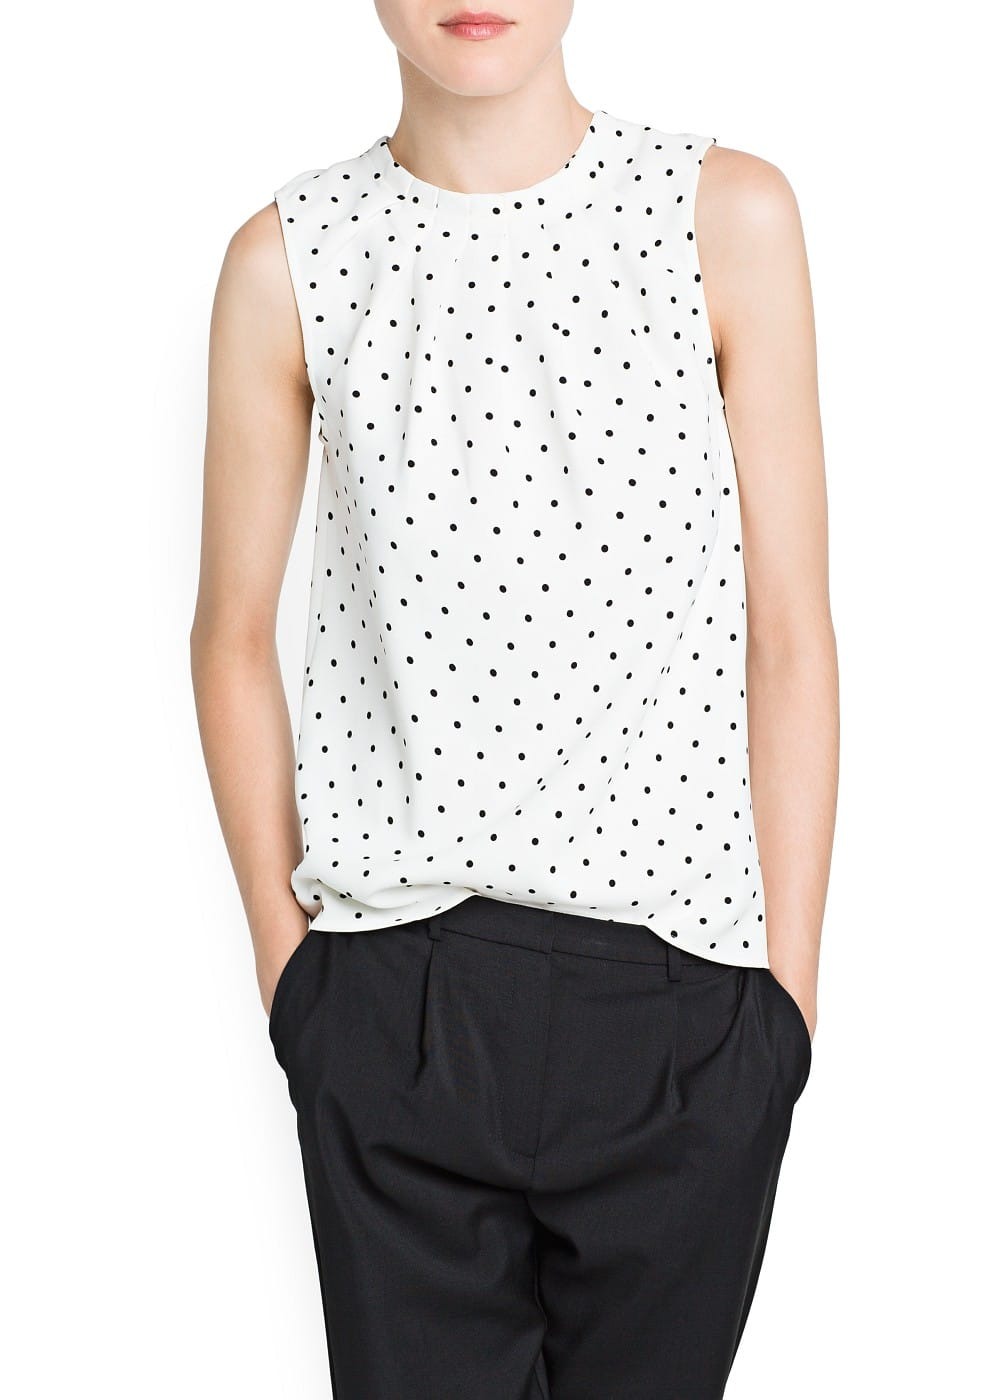 Decorative pleats polka dot top